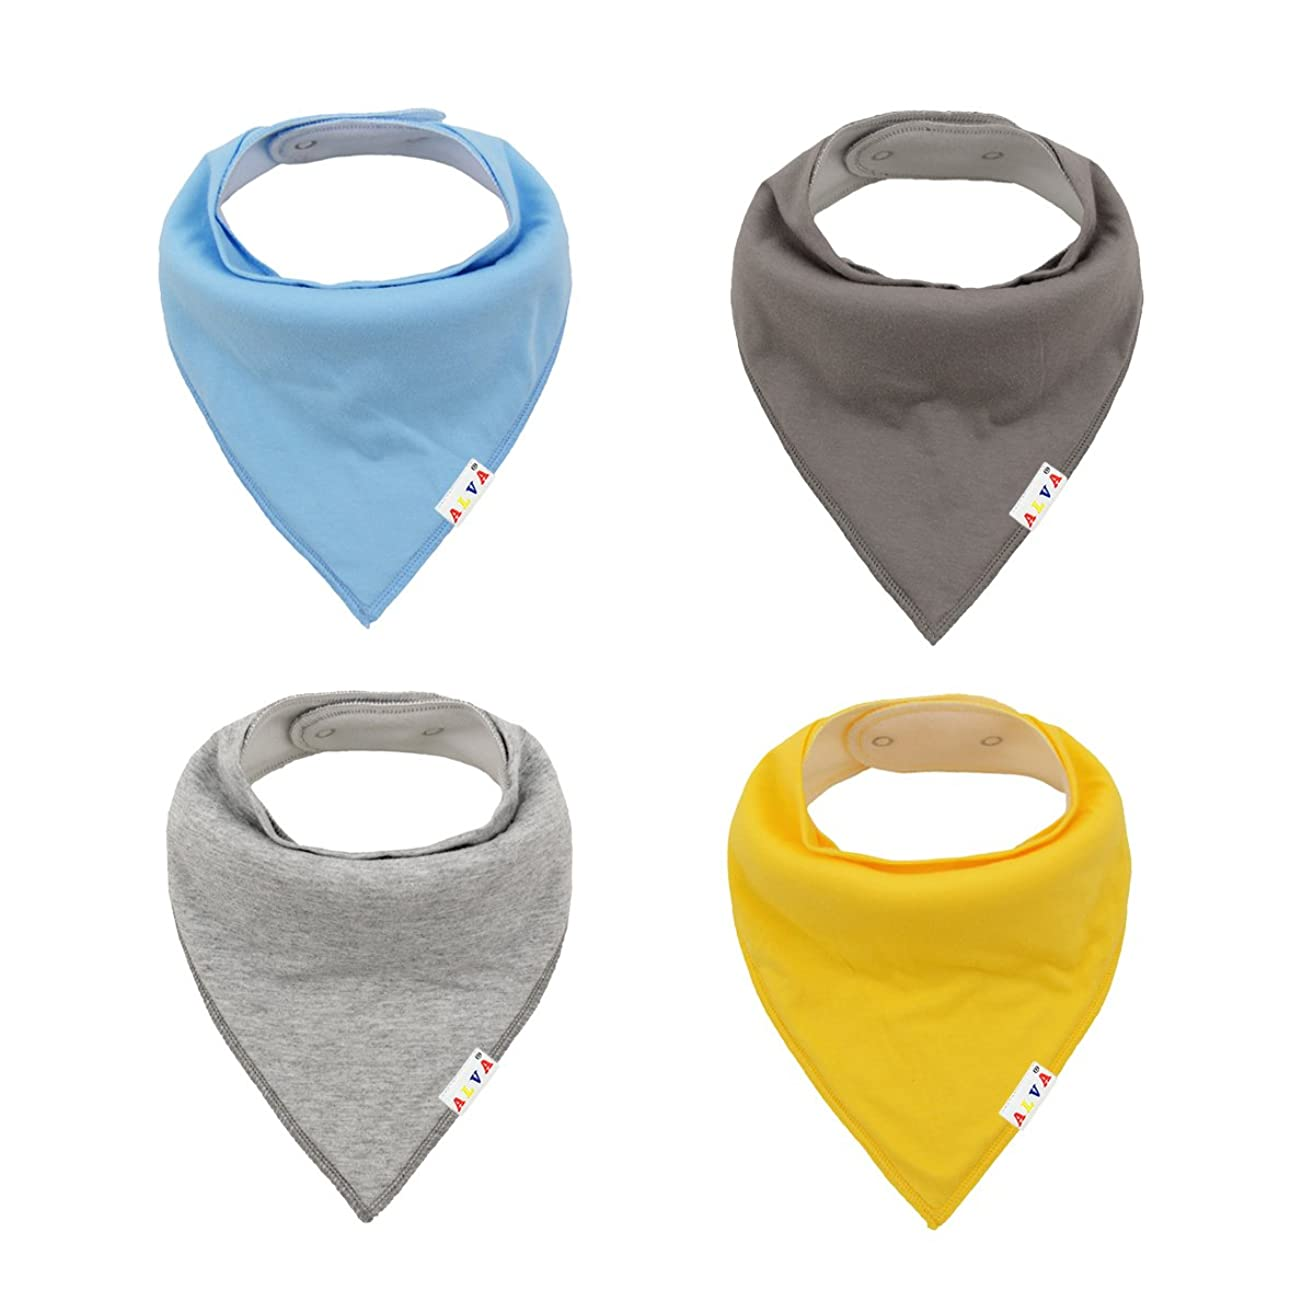 ALVABABY Solid Baby Bandana Bibs for Boys & Girls 4 Pack of Super Absorbent Baby Gift Sets KSW03